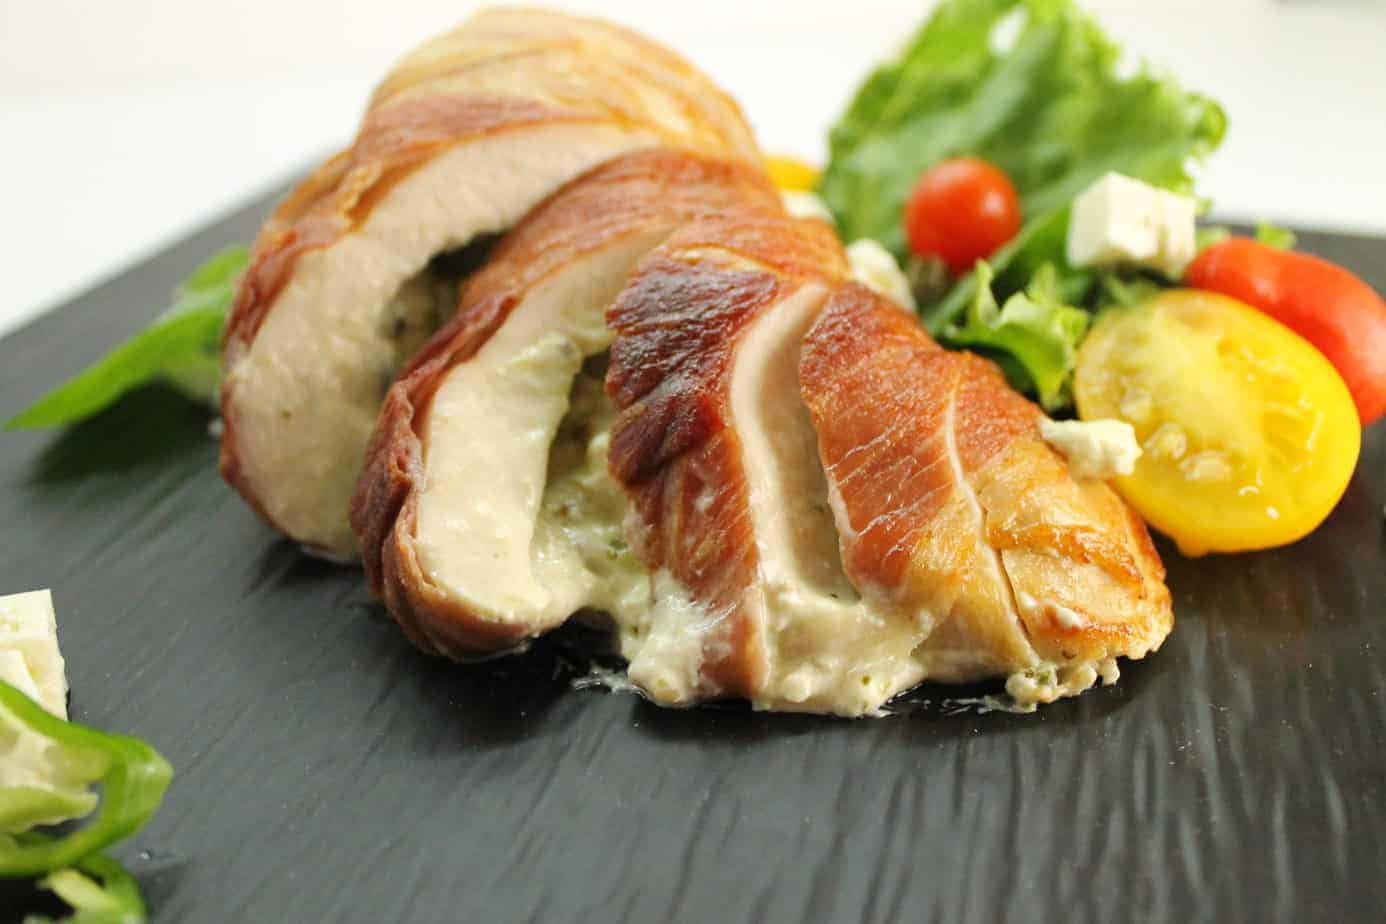 Savory stuffed chicken breasts wrapped in Prosciutto are a delicious and surprisingly easy meal to make.